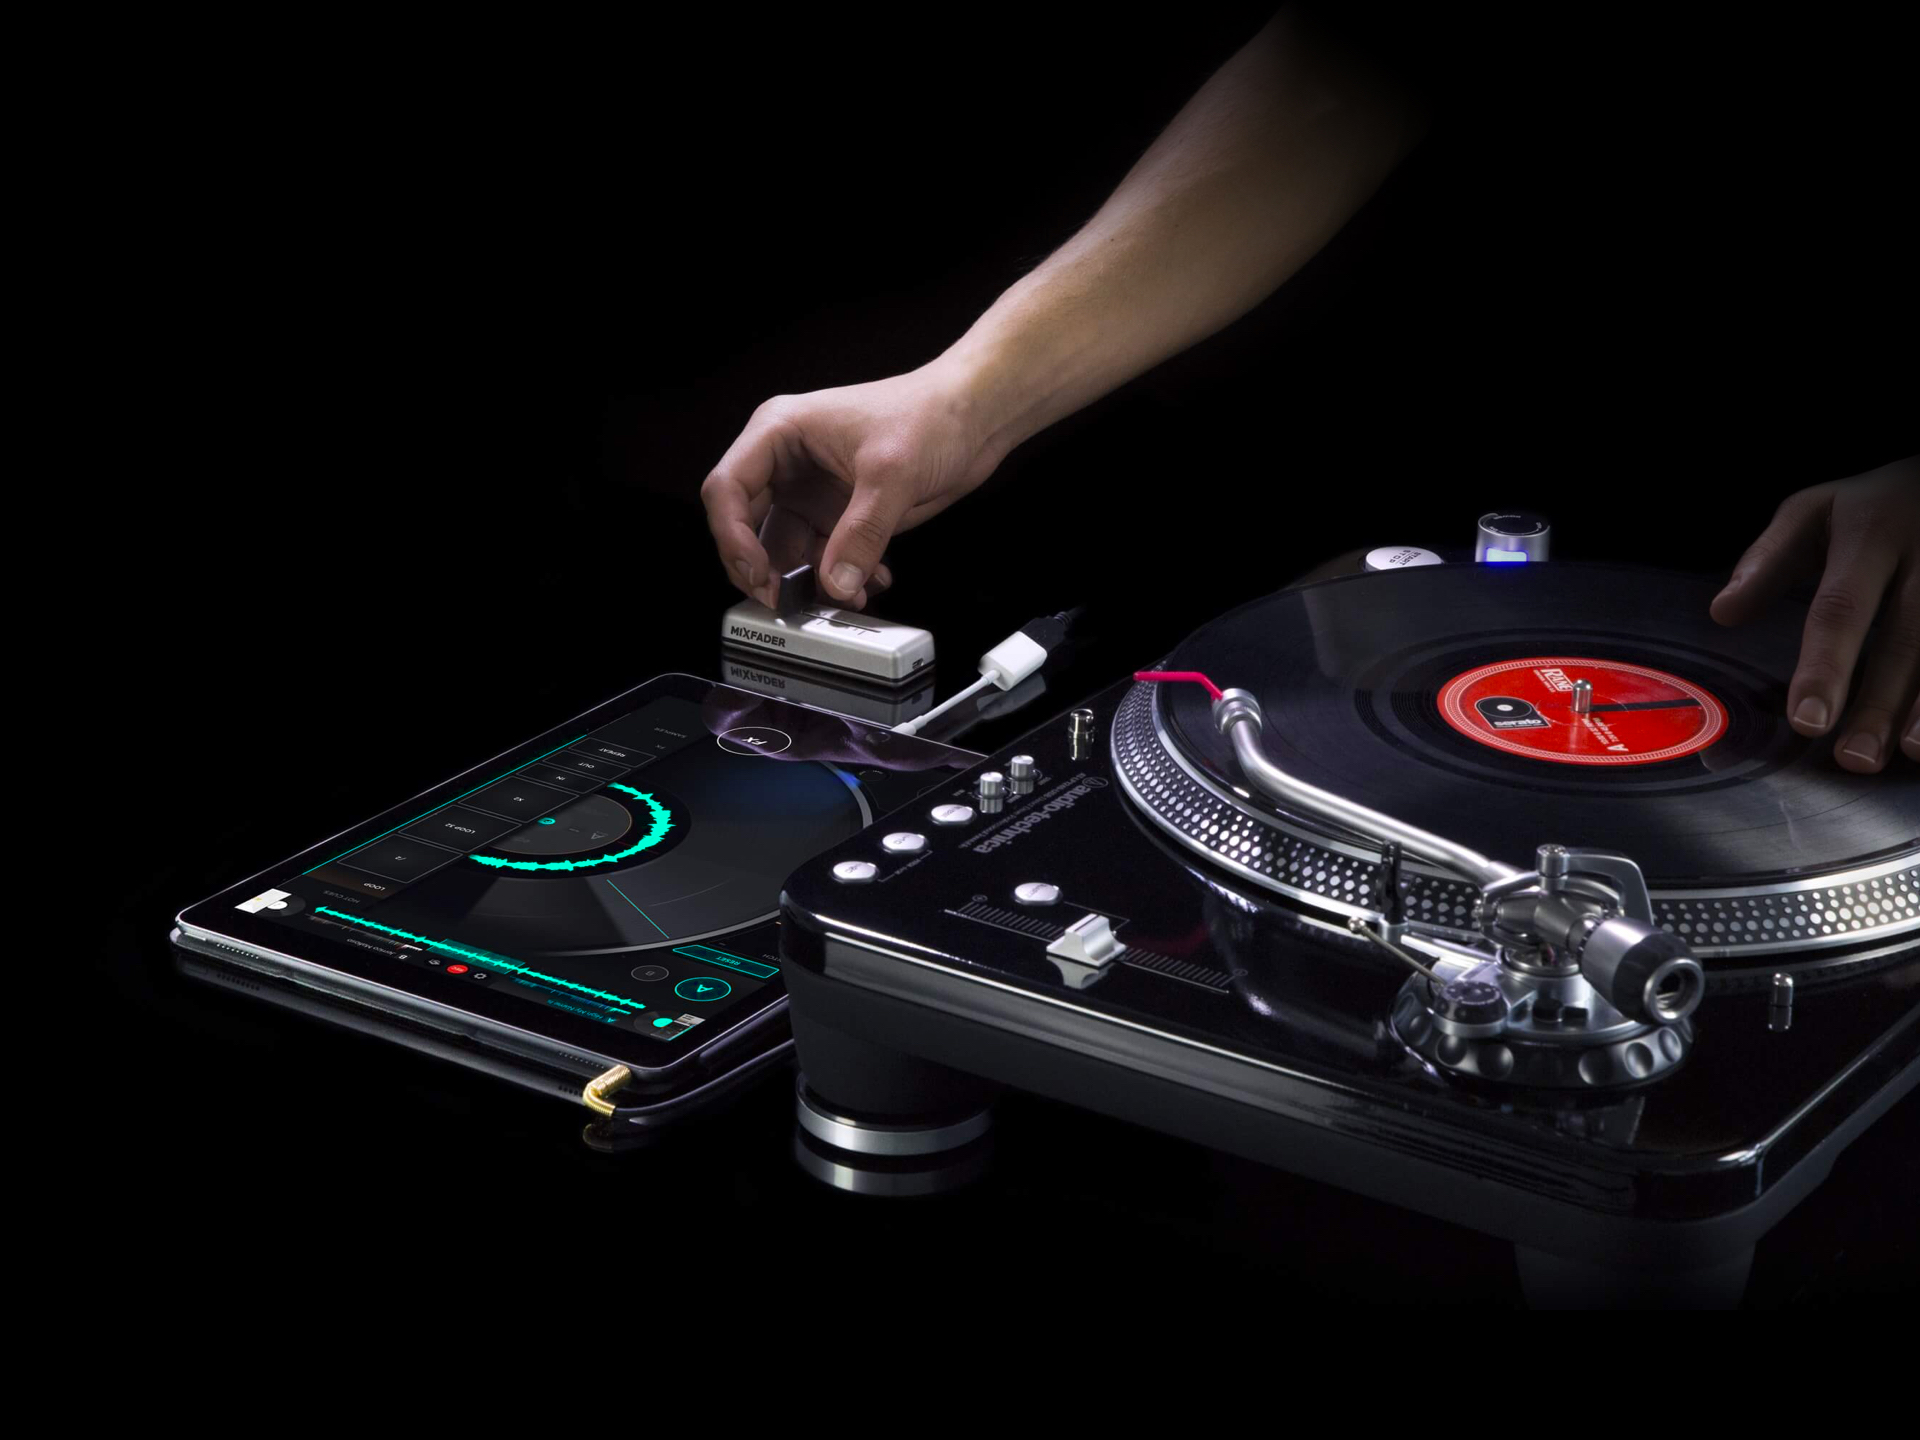 Mixfader and turntable